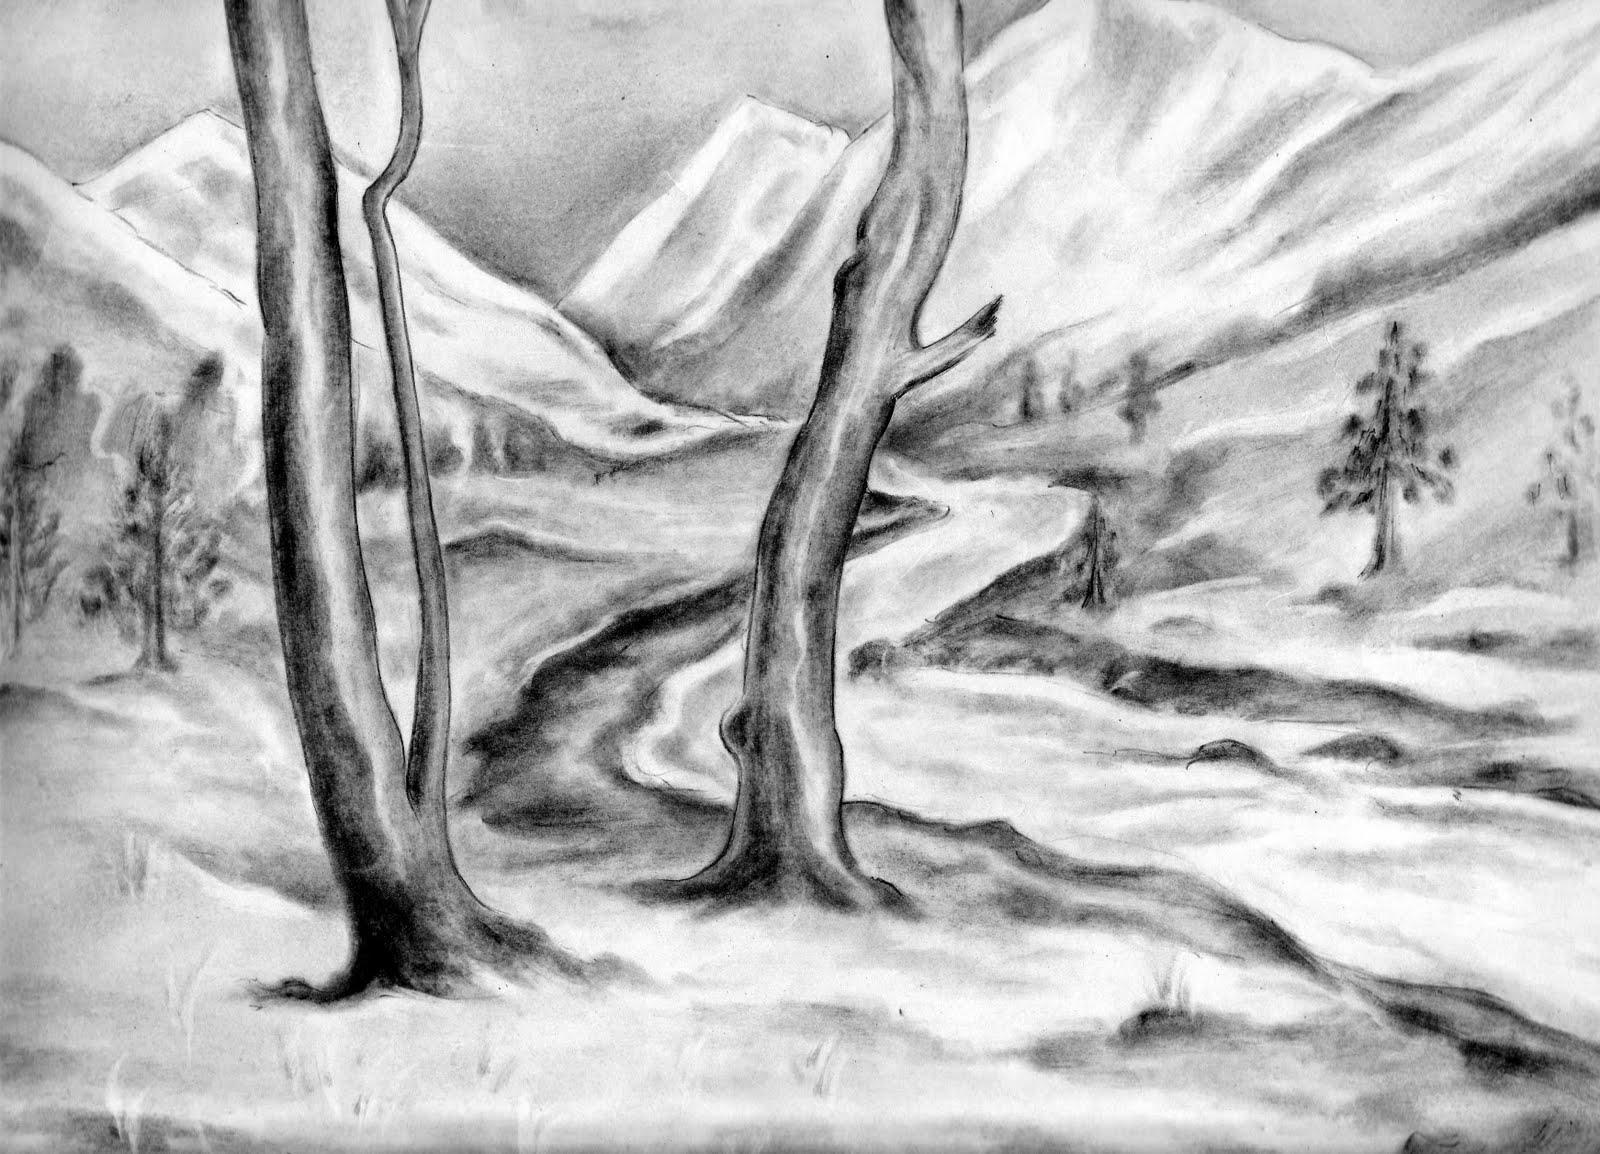 My pencil drawings natural